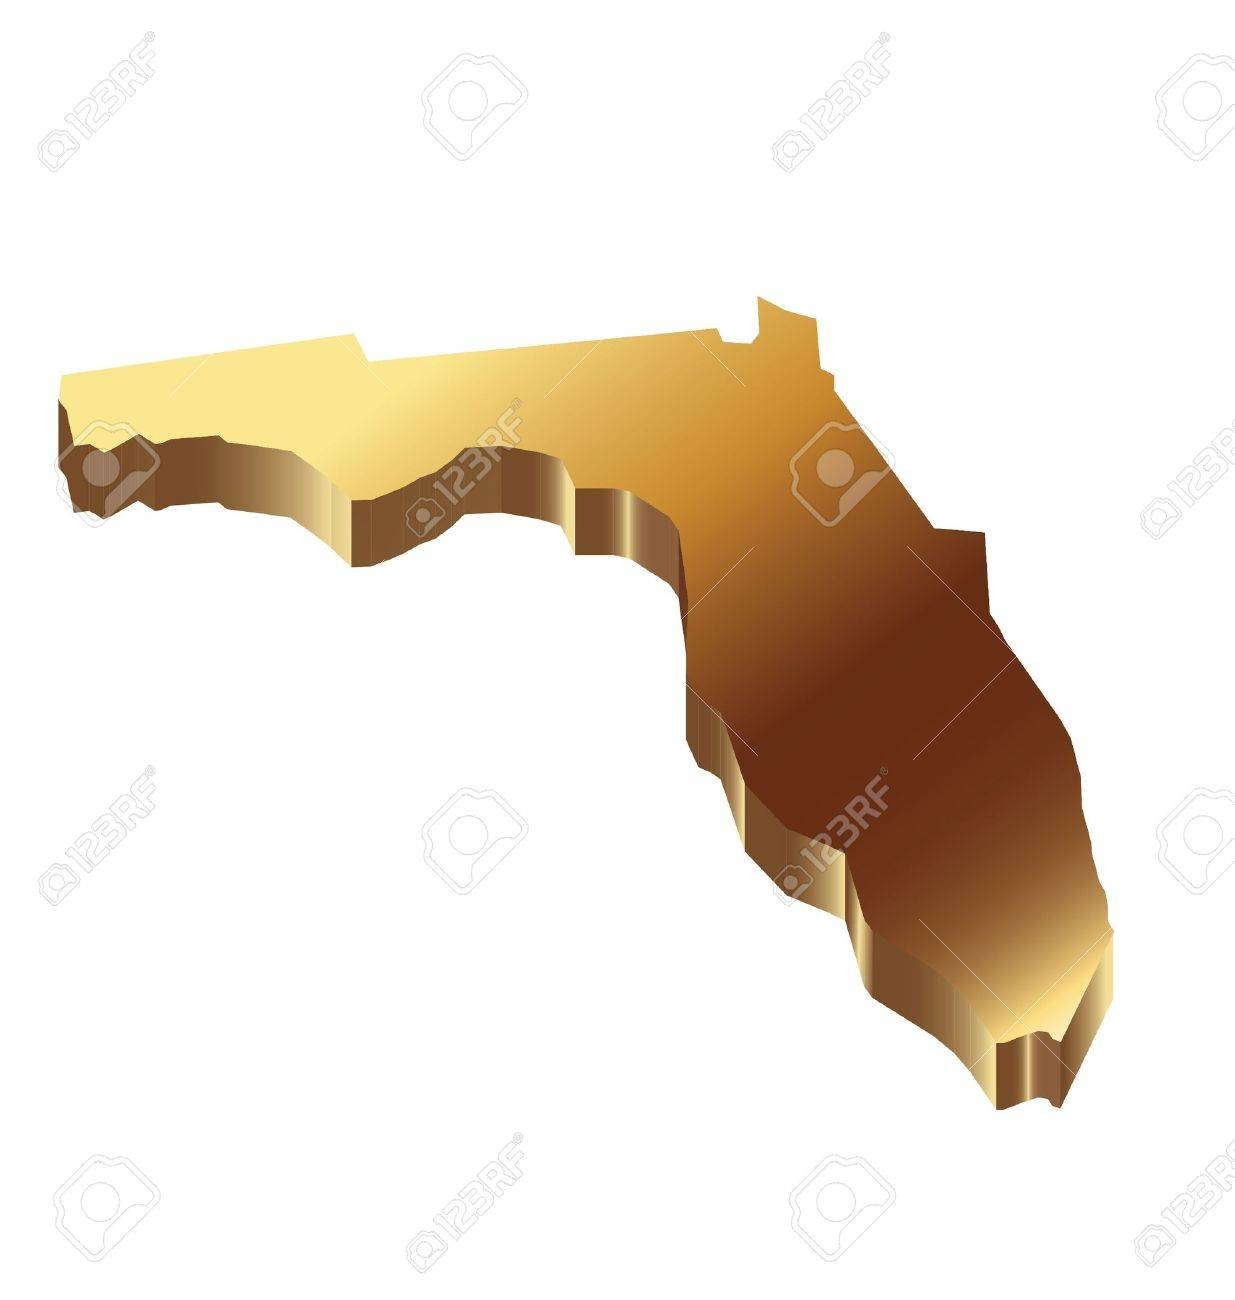 4,662 Florida Stock Vector Illustration And Royalty Free Florida ...